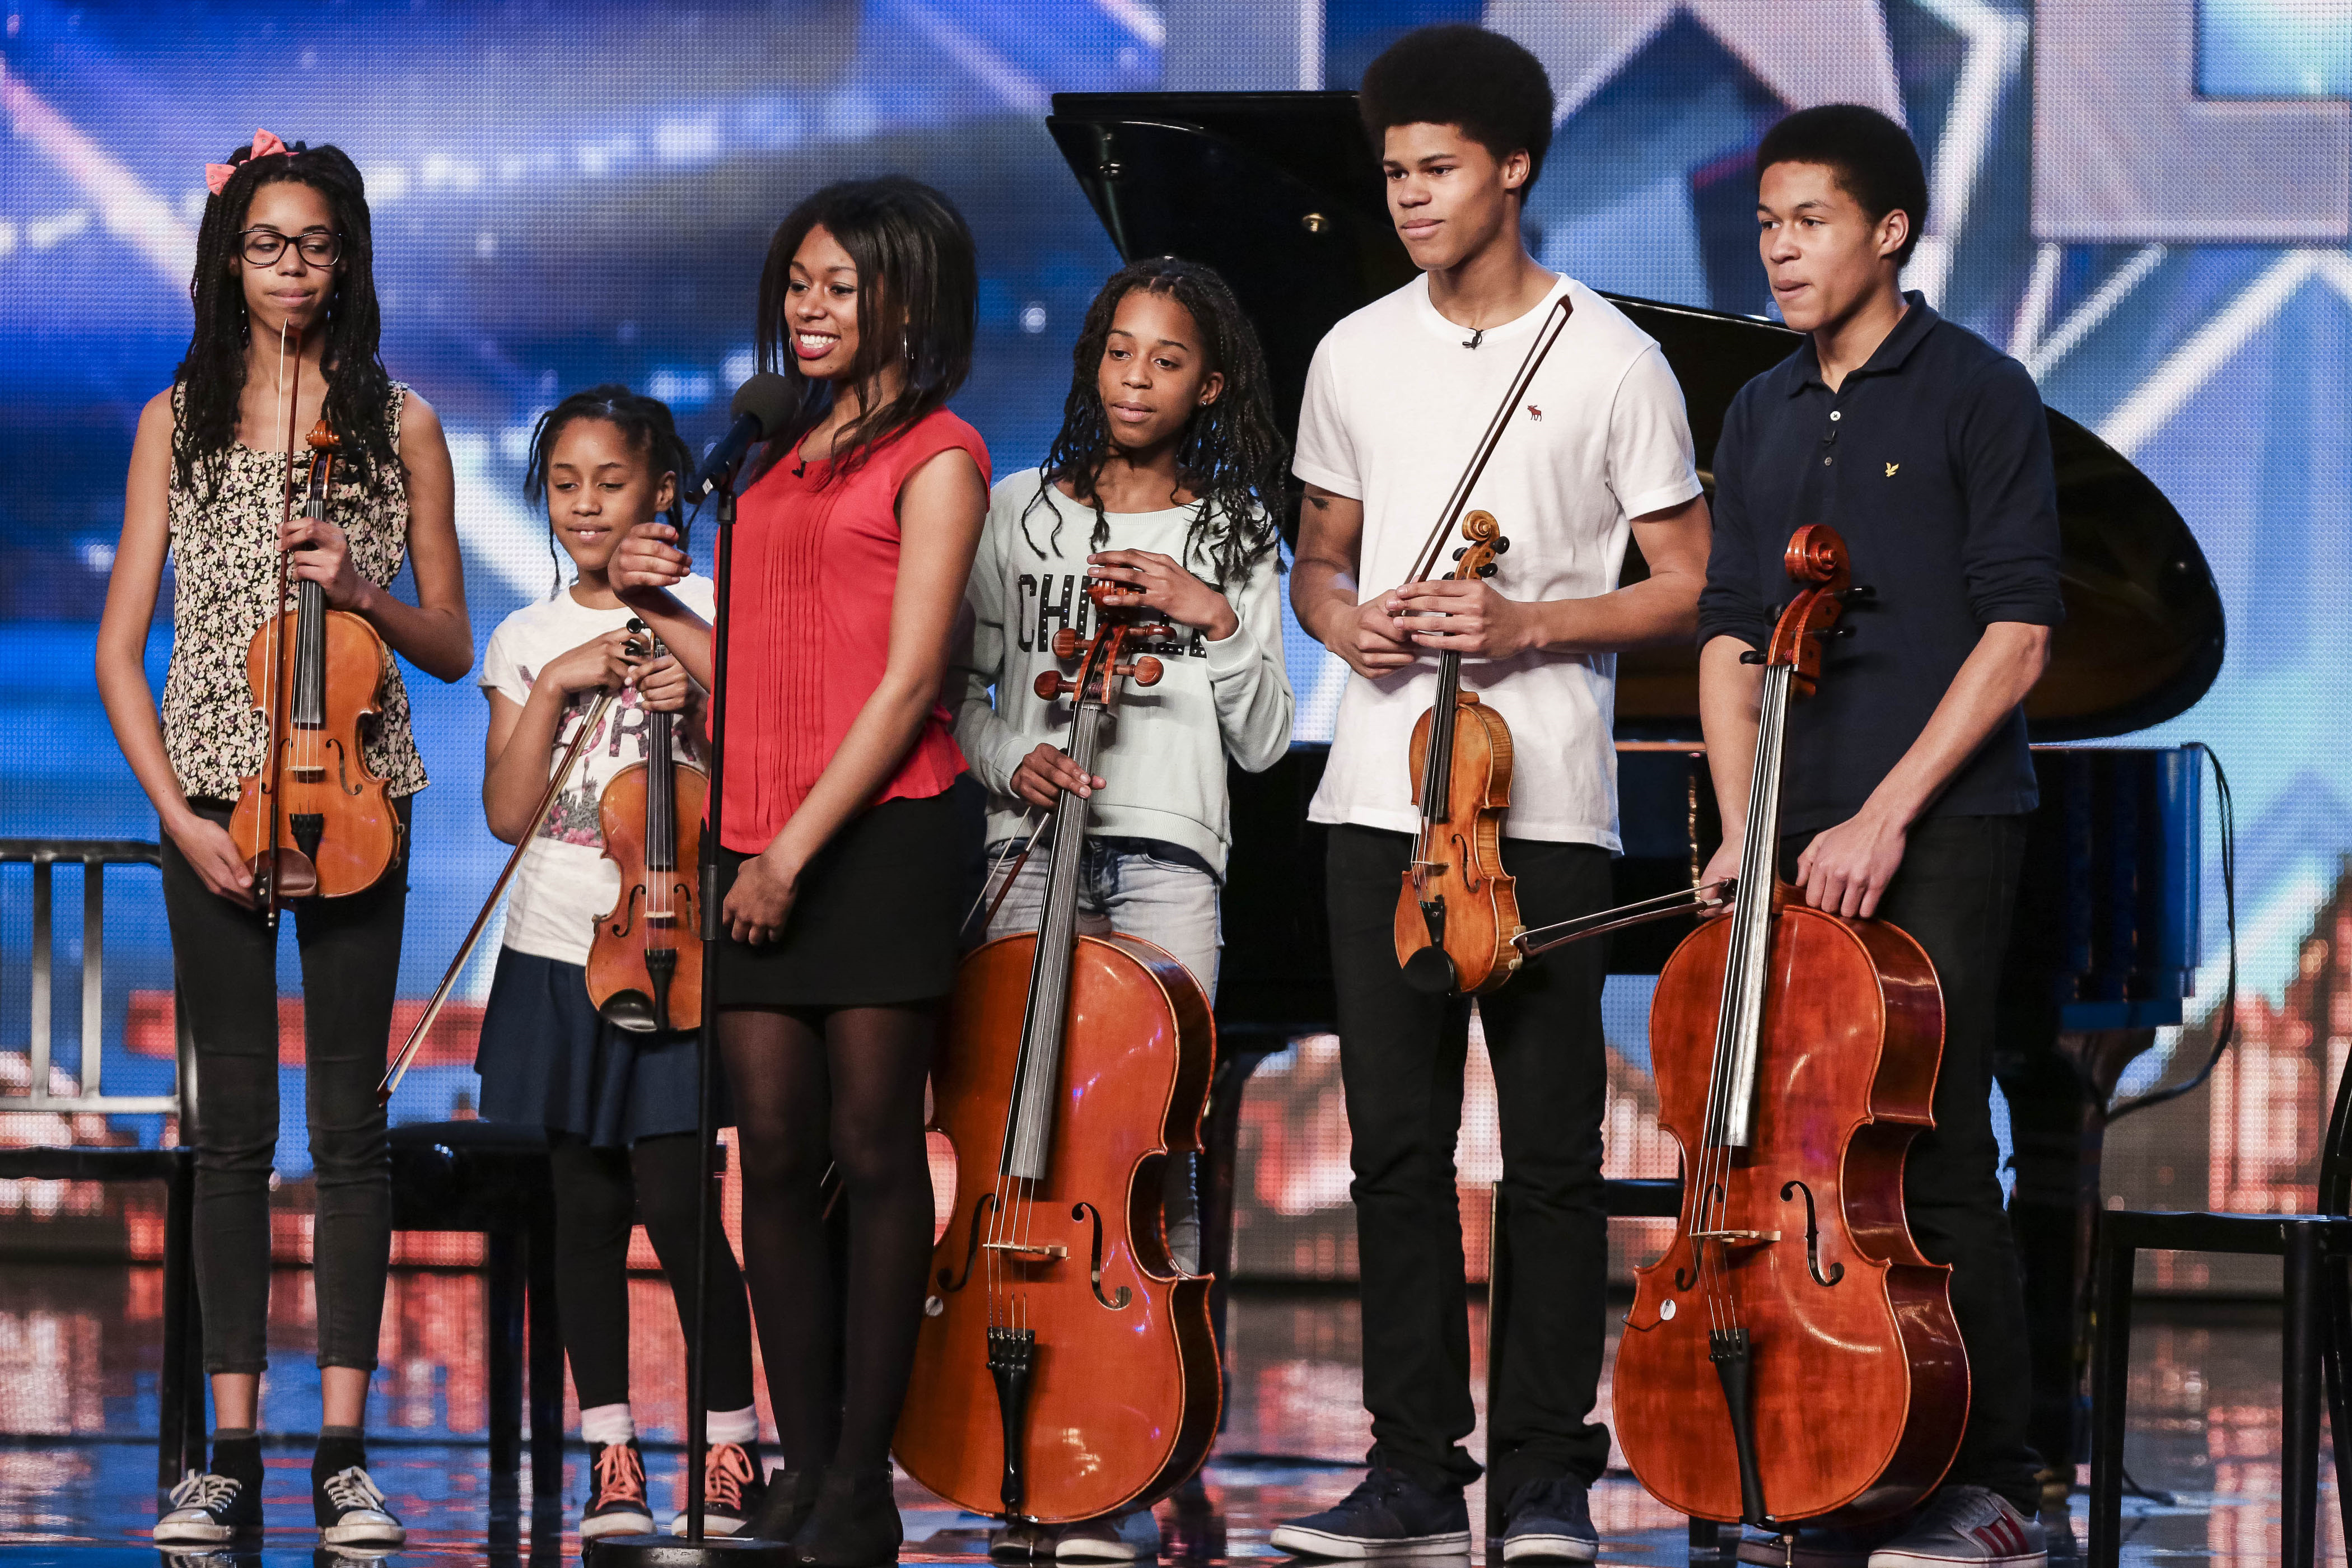 The Kanneh-Masons at the Britain's Got Talent semifinal in 2015